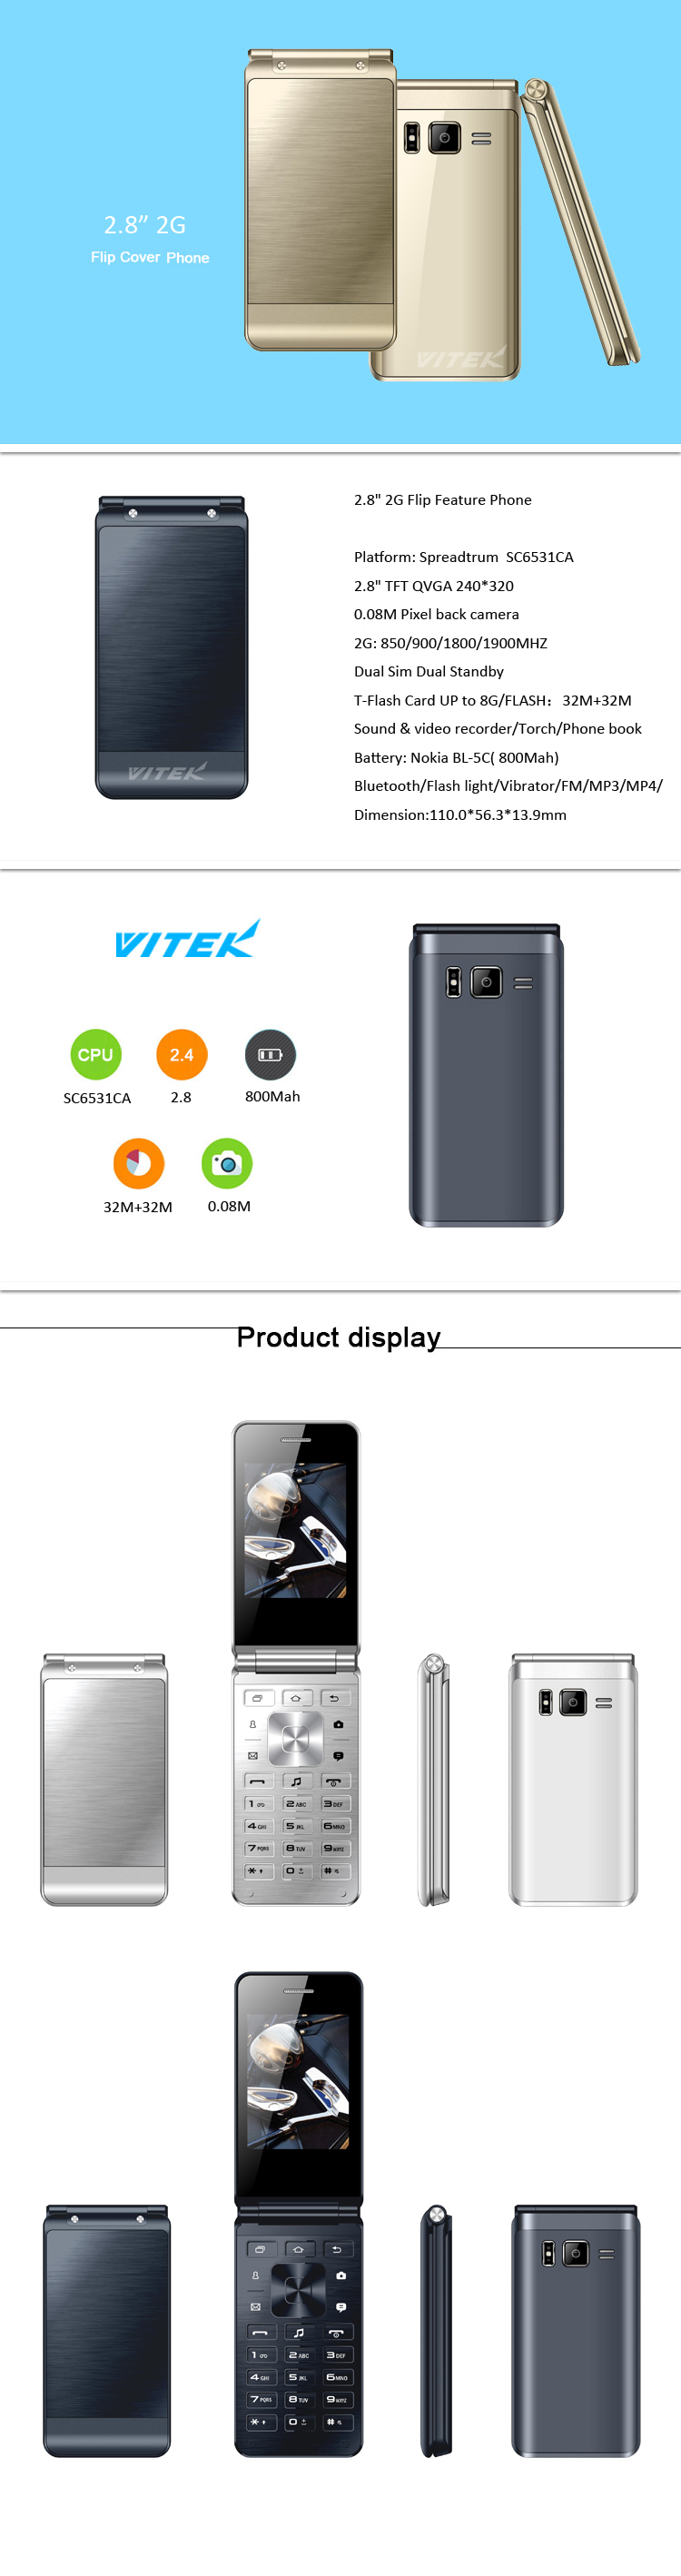 2.4 2.8 Dual Screen Mini Cute Flip Phone, Slim Mobile Dual Sim Card 2G 3G Flip Phone, Unlocked Flip Mobiles Cell Phones